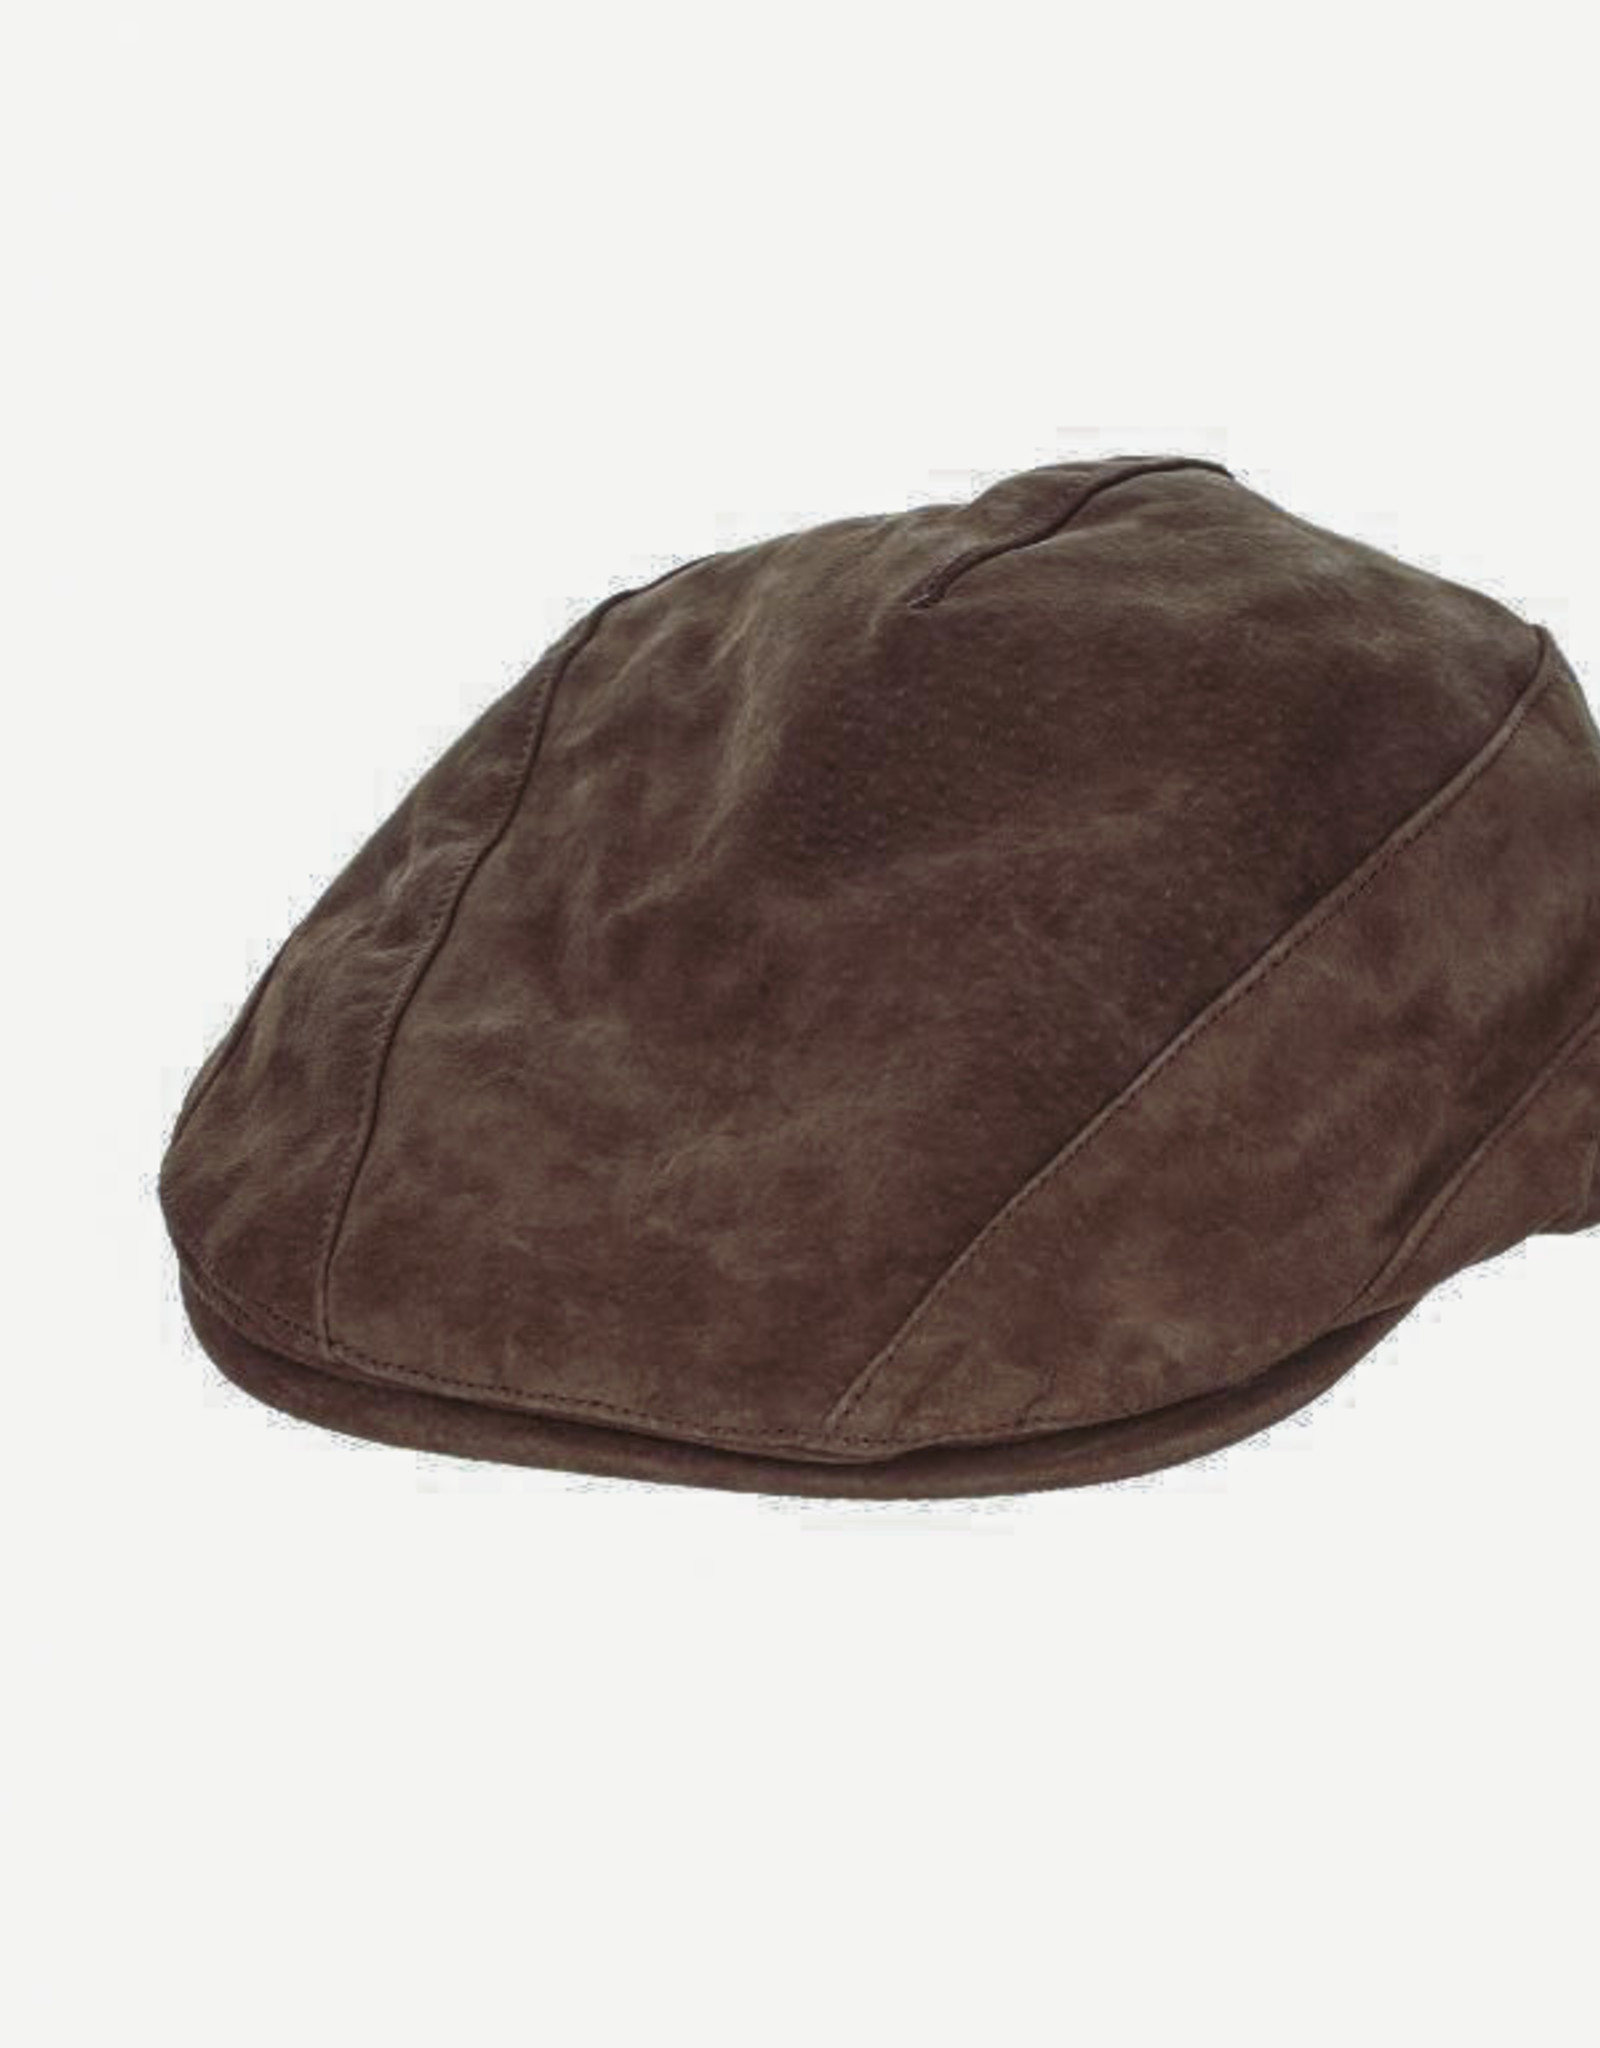 STETSON Hat Stetson 1865  LEVEN Suede Ivy Taupe